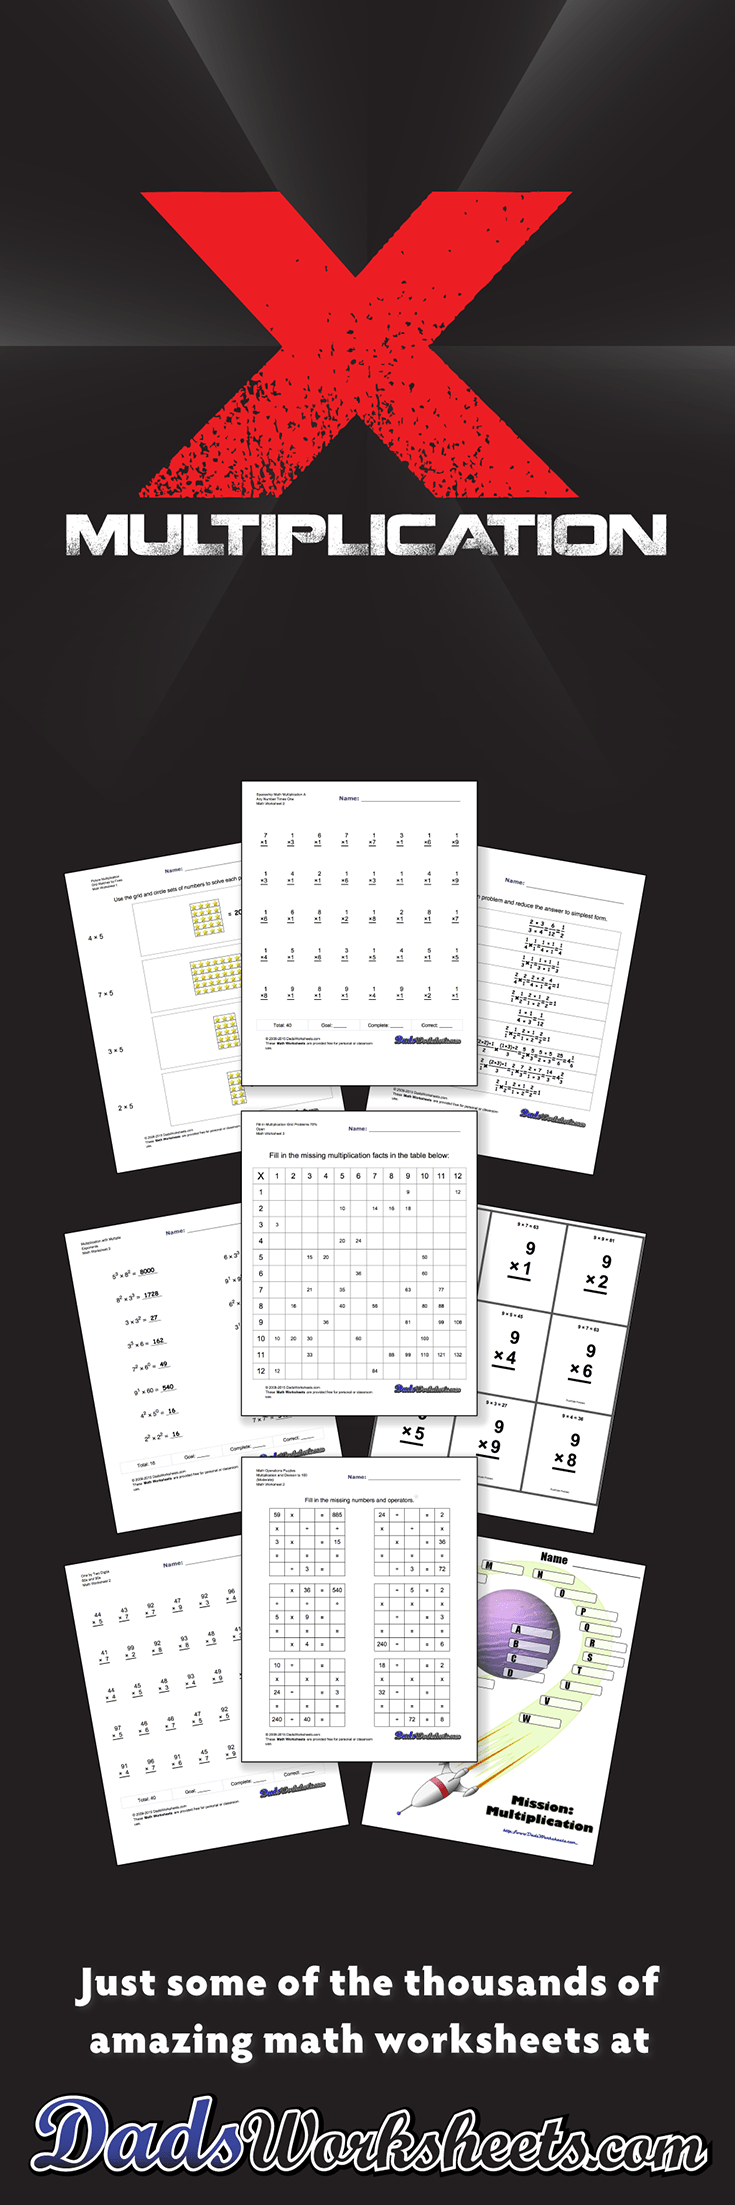 804 Multiplication Worksheets for You to Print Right Now Multiplication Worksheets